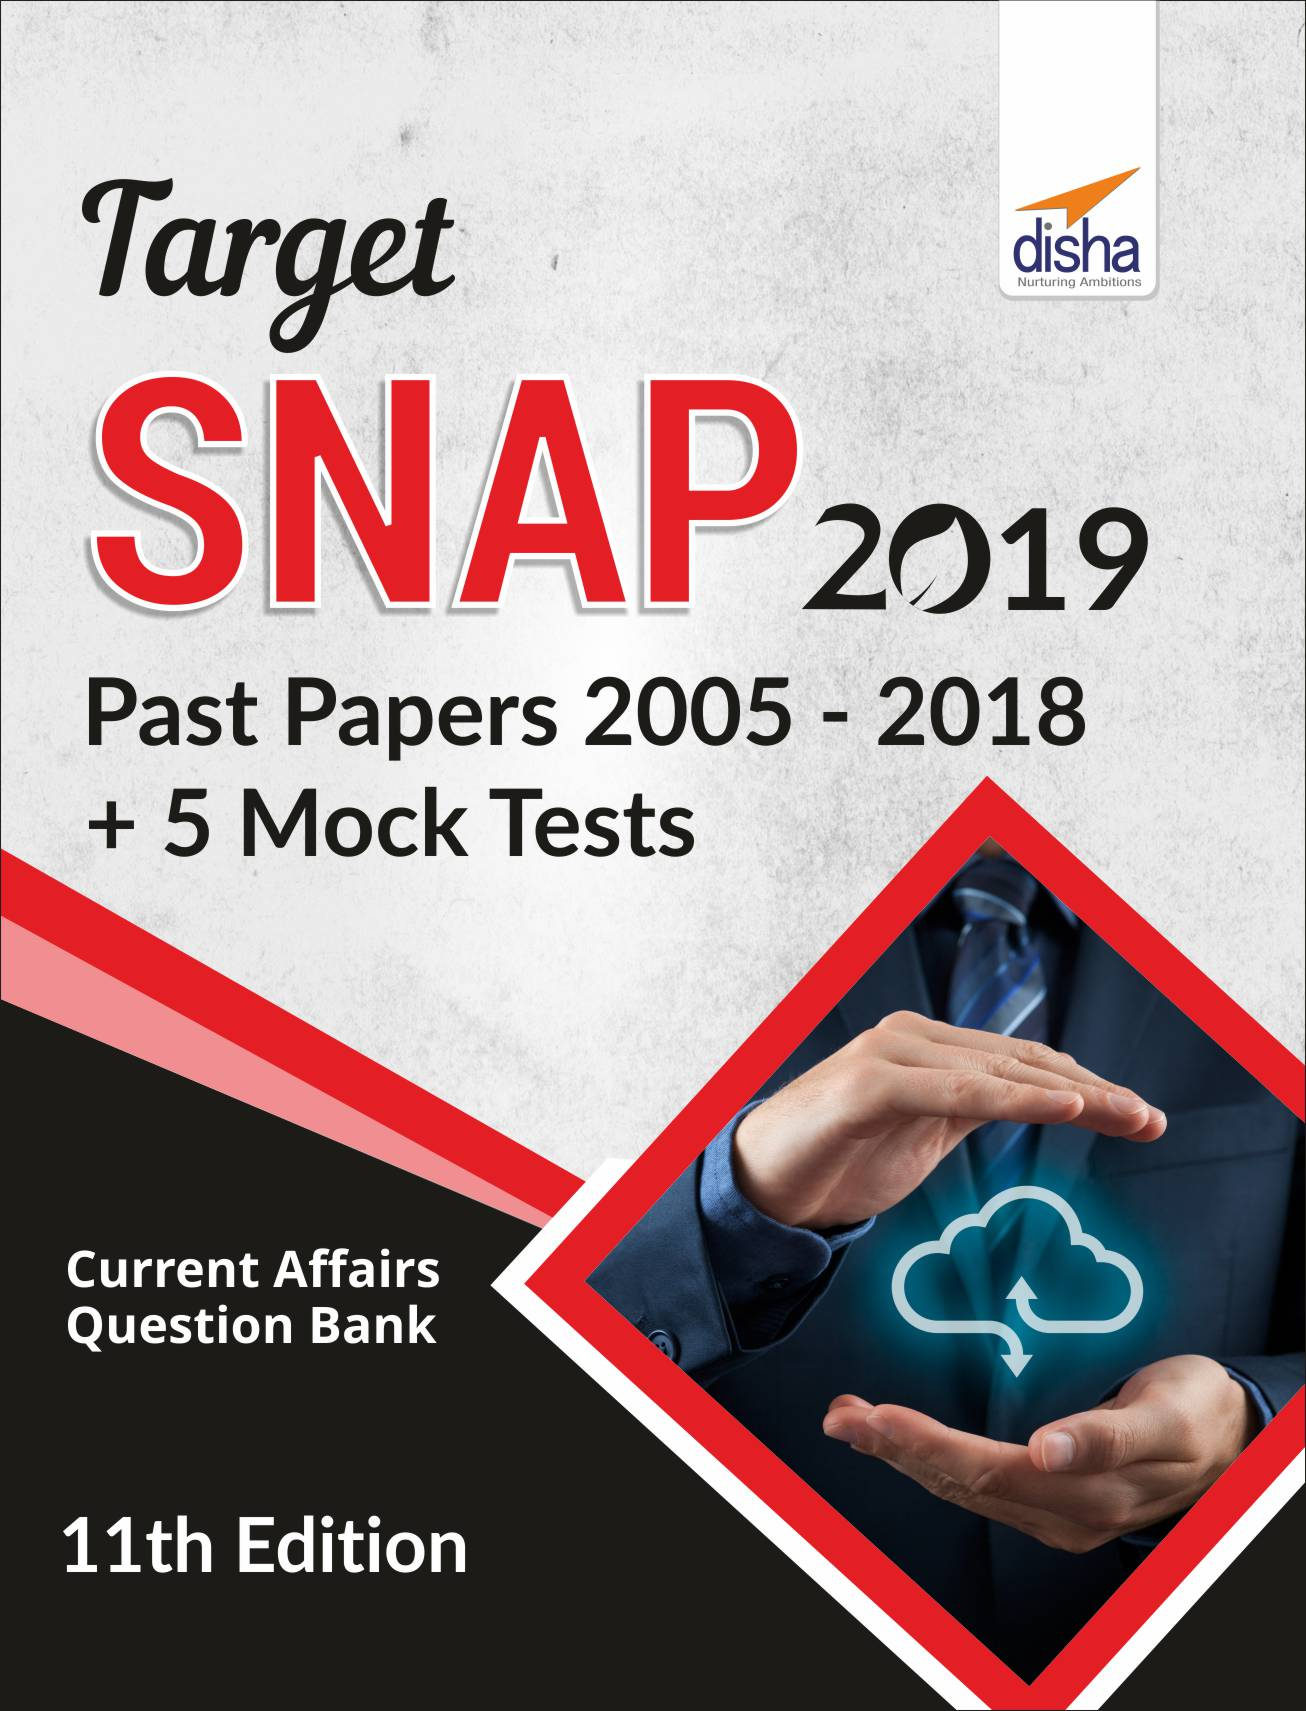 Target SNAP 2019 past papers